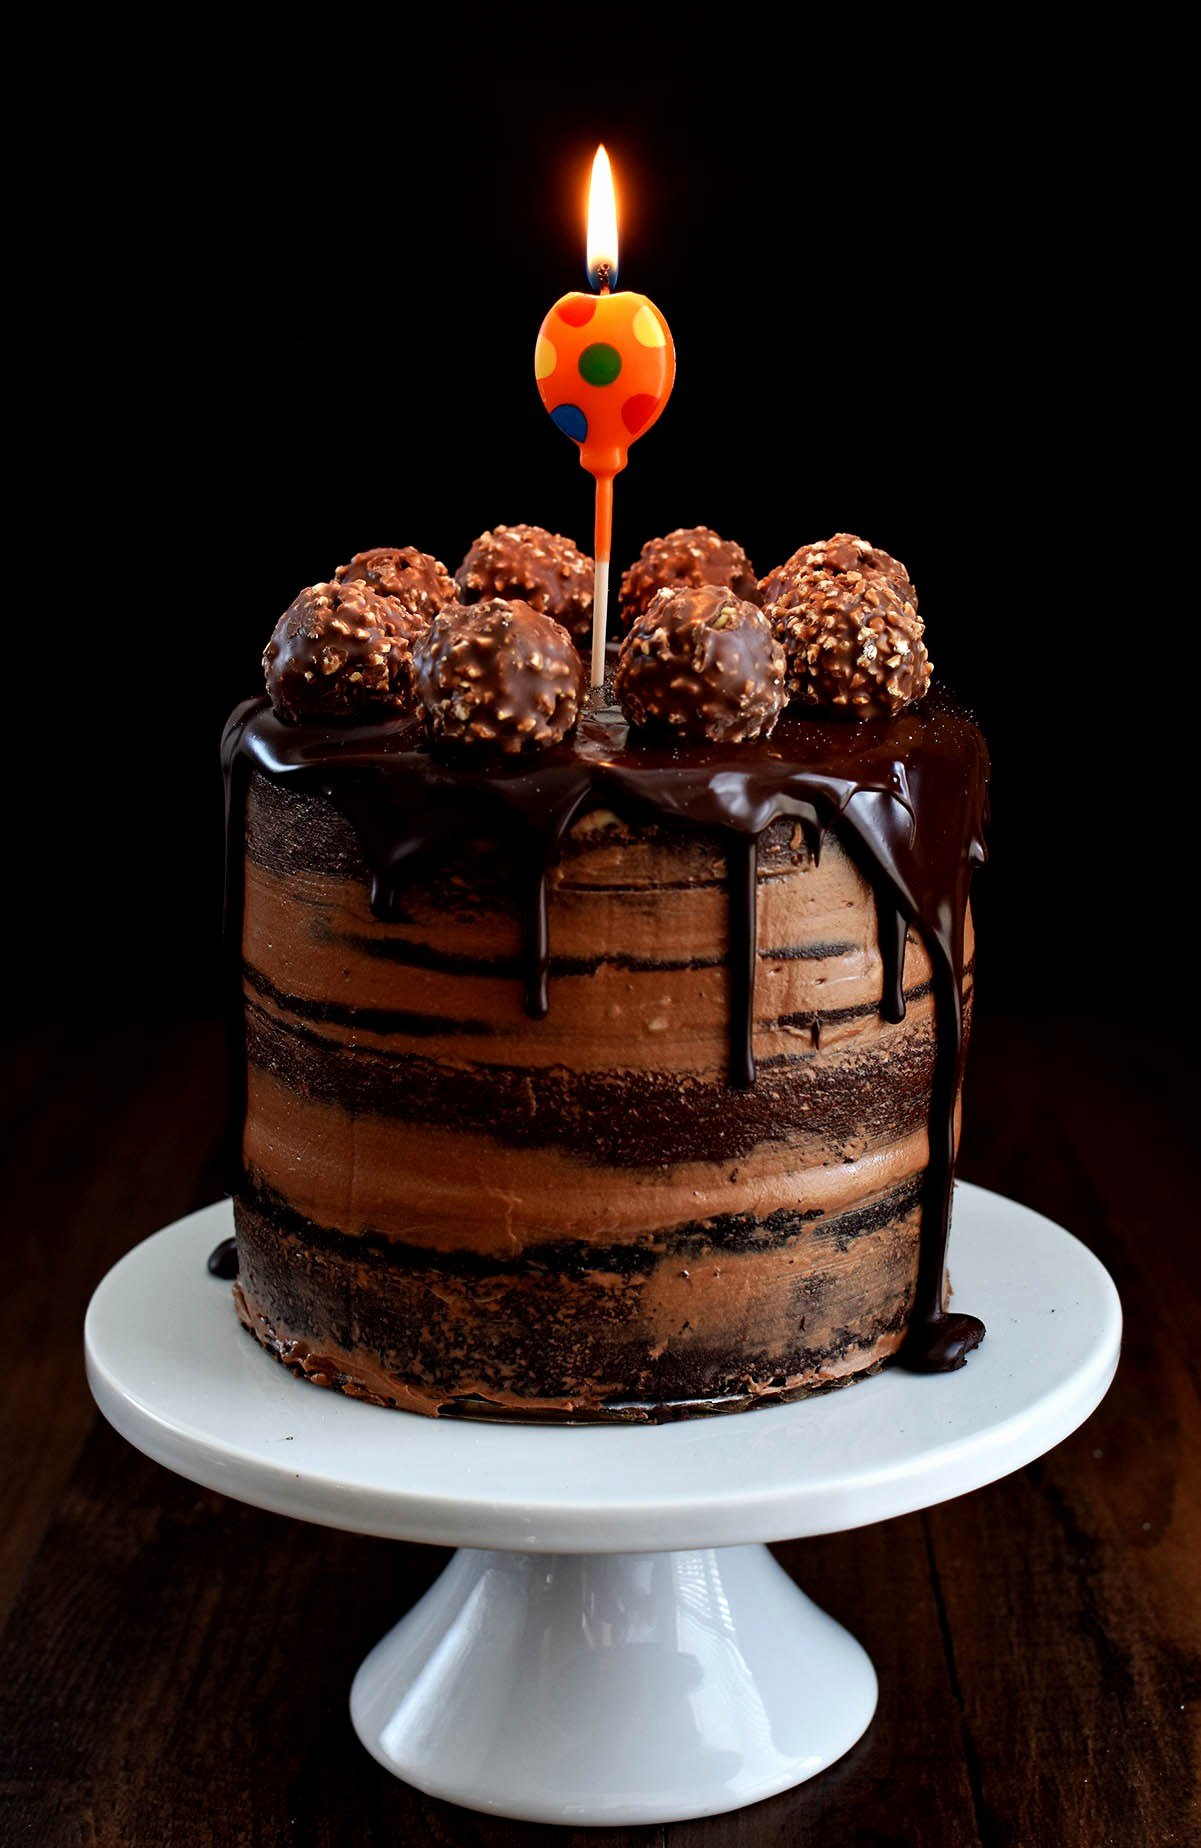 Happy Birthday Candy Images Fresh Chocolate Hazelnut Semi Naked Cake with Dark Chocolate